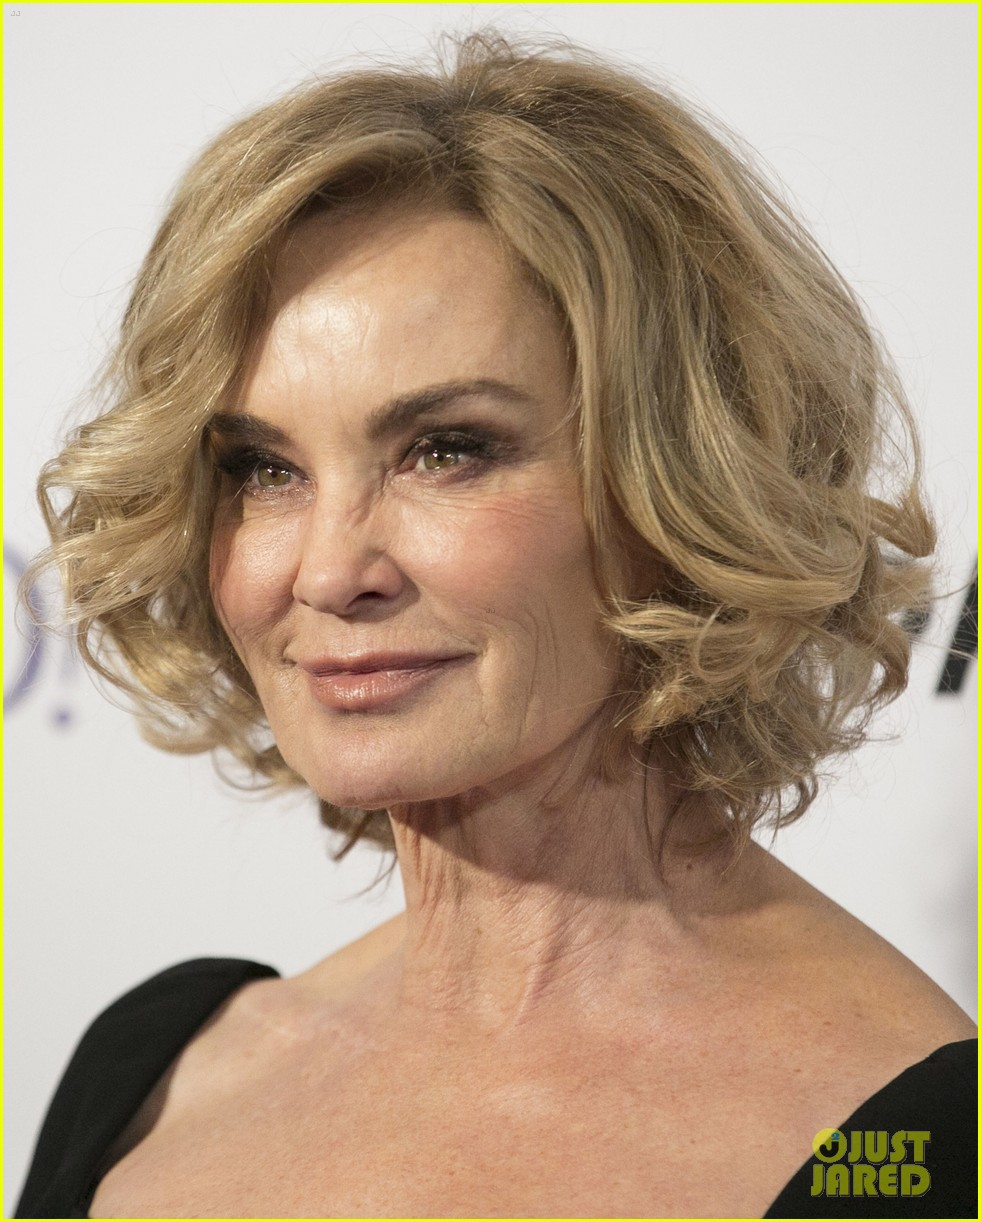 jessica lange oscarjessica lange – gods and monsters, jessica lange young, jessica lange – gods and monsters перевод, jessica lange – the name game, jessica lange king kong, jessica lange – life on mars, jessica lange – gods and monsters скачать, jessica lange – lana banana, jessica lange gif, jessica lange oscar, jessica lange the name game скачать, jessica lange life on mars текст, jessica lange – gods and monsters lyrics, jessica lange песни, jessica lange 2017, jessica lange - heroes, jessica lange kinopoisk, jessica lange as joan crawford, jessica lange tumblr, jessica lange vk